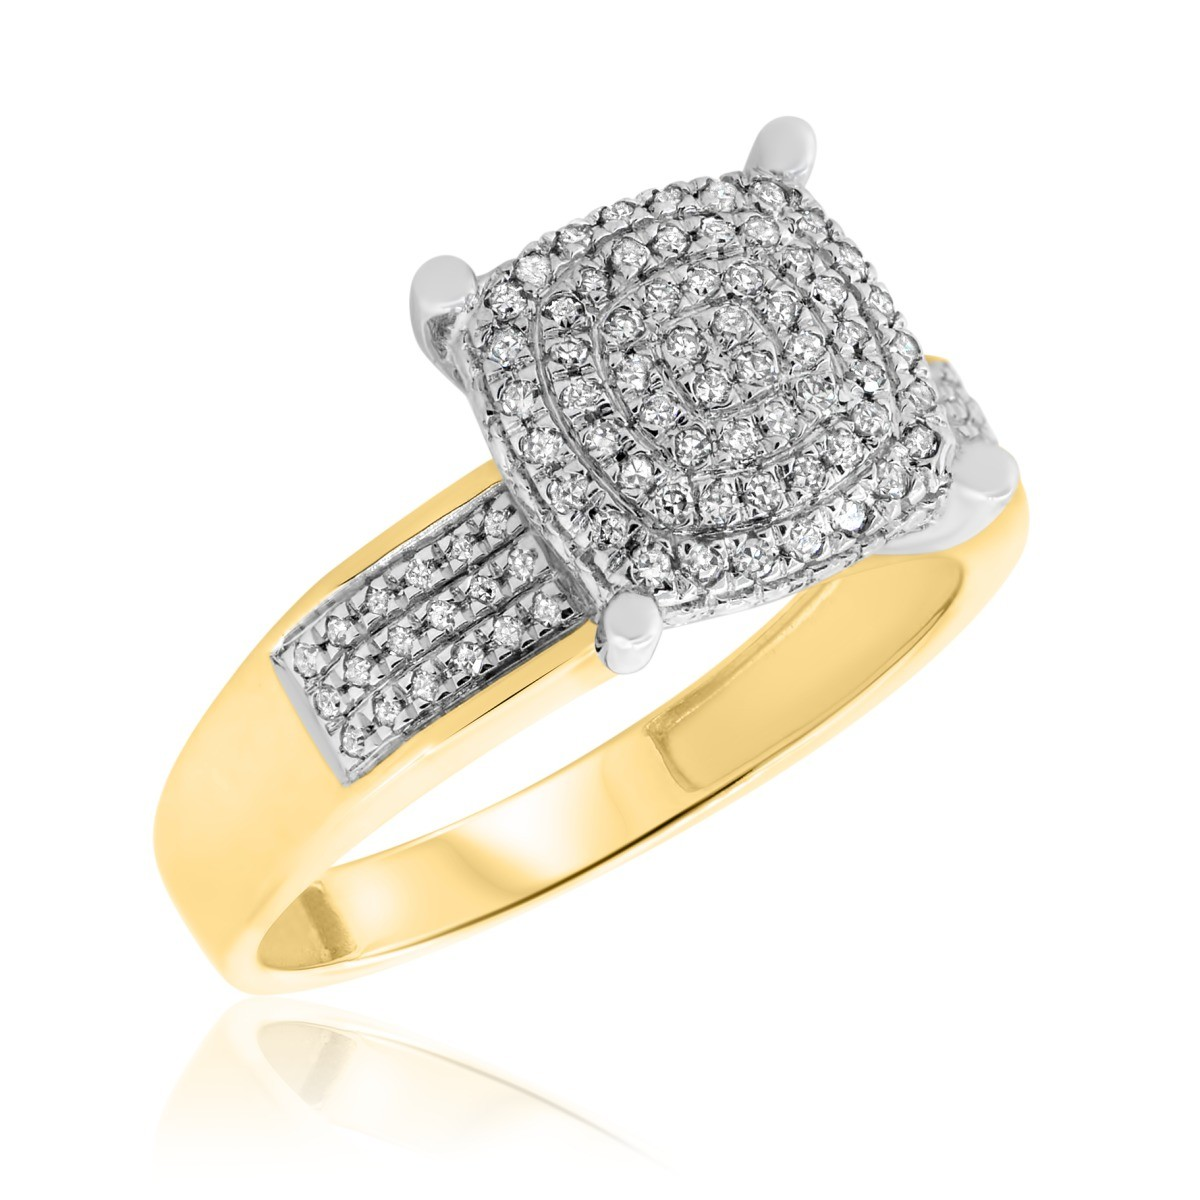 1/4 CT. T.W. Diamond Engagement Ring 10K Yellow Gold